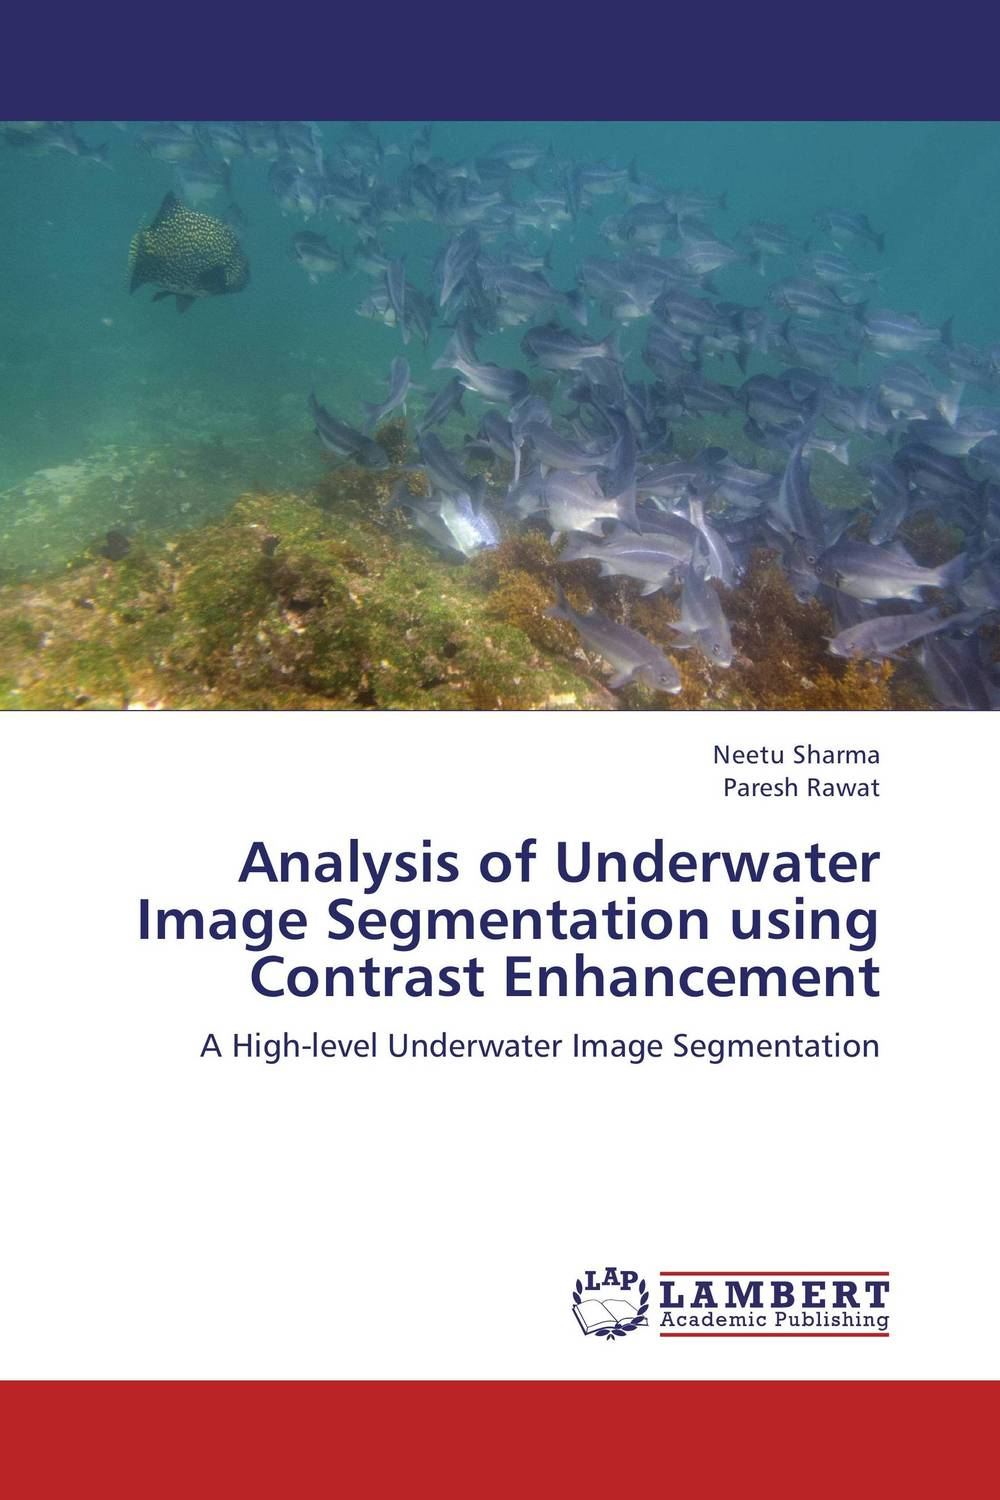 Analysis of Underwater Image Segmentation using Contrast Enhancement clustering and optimization based image segmentation techniques